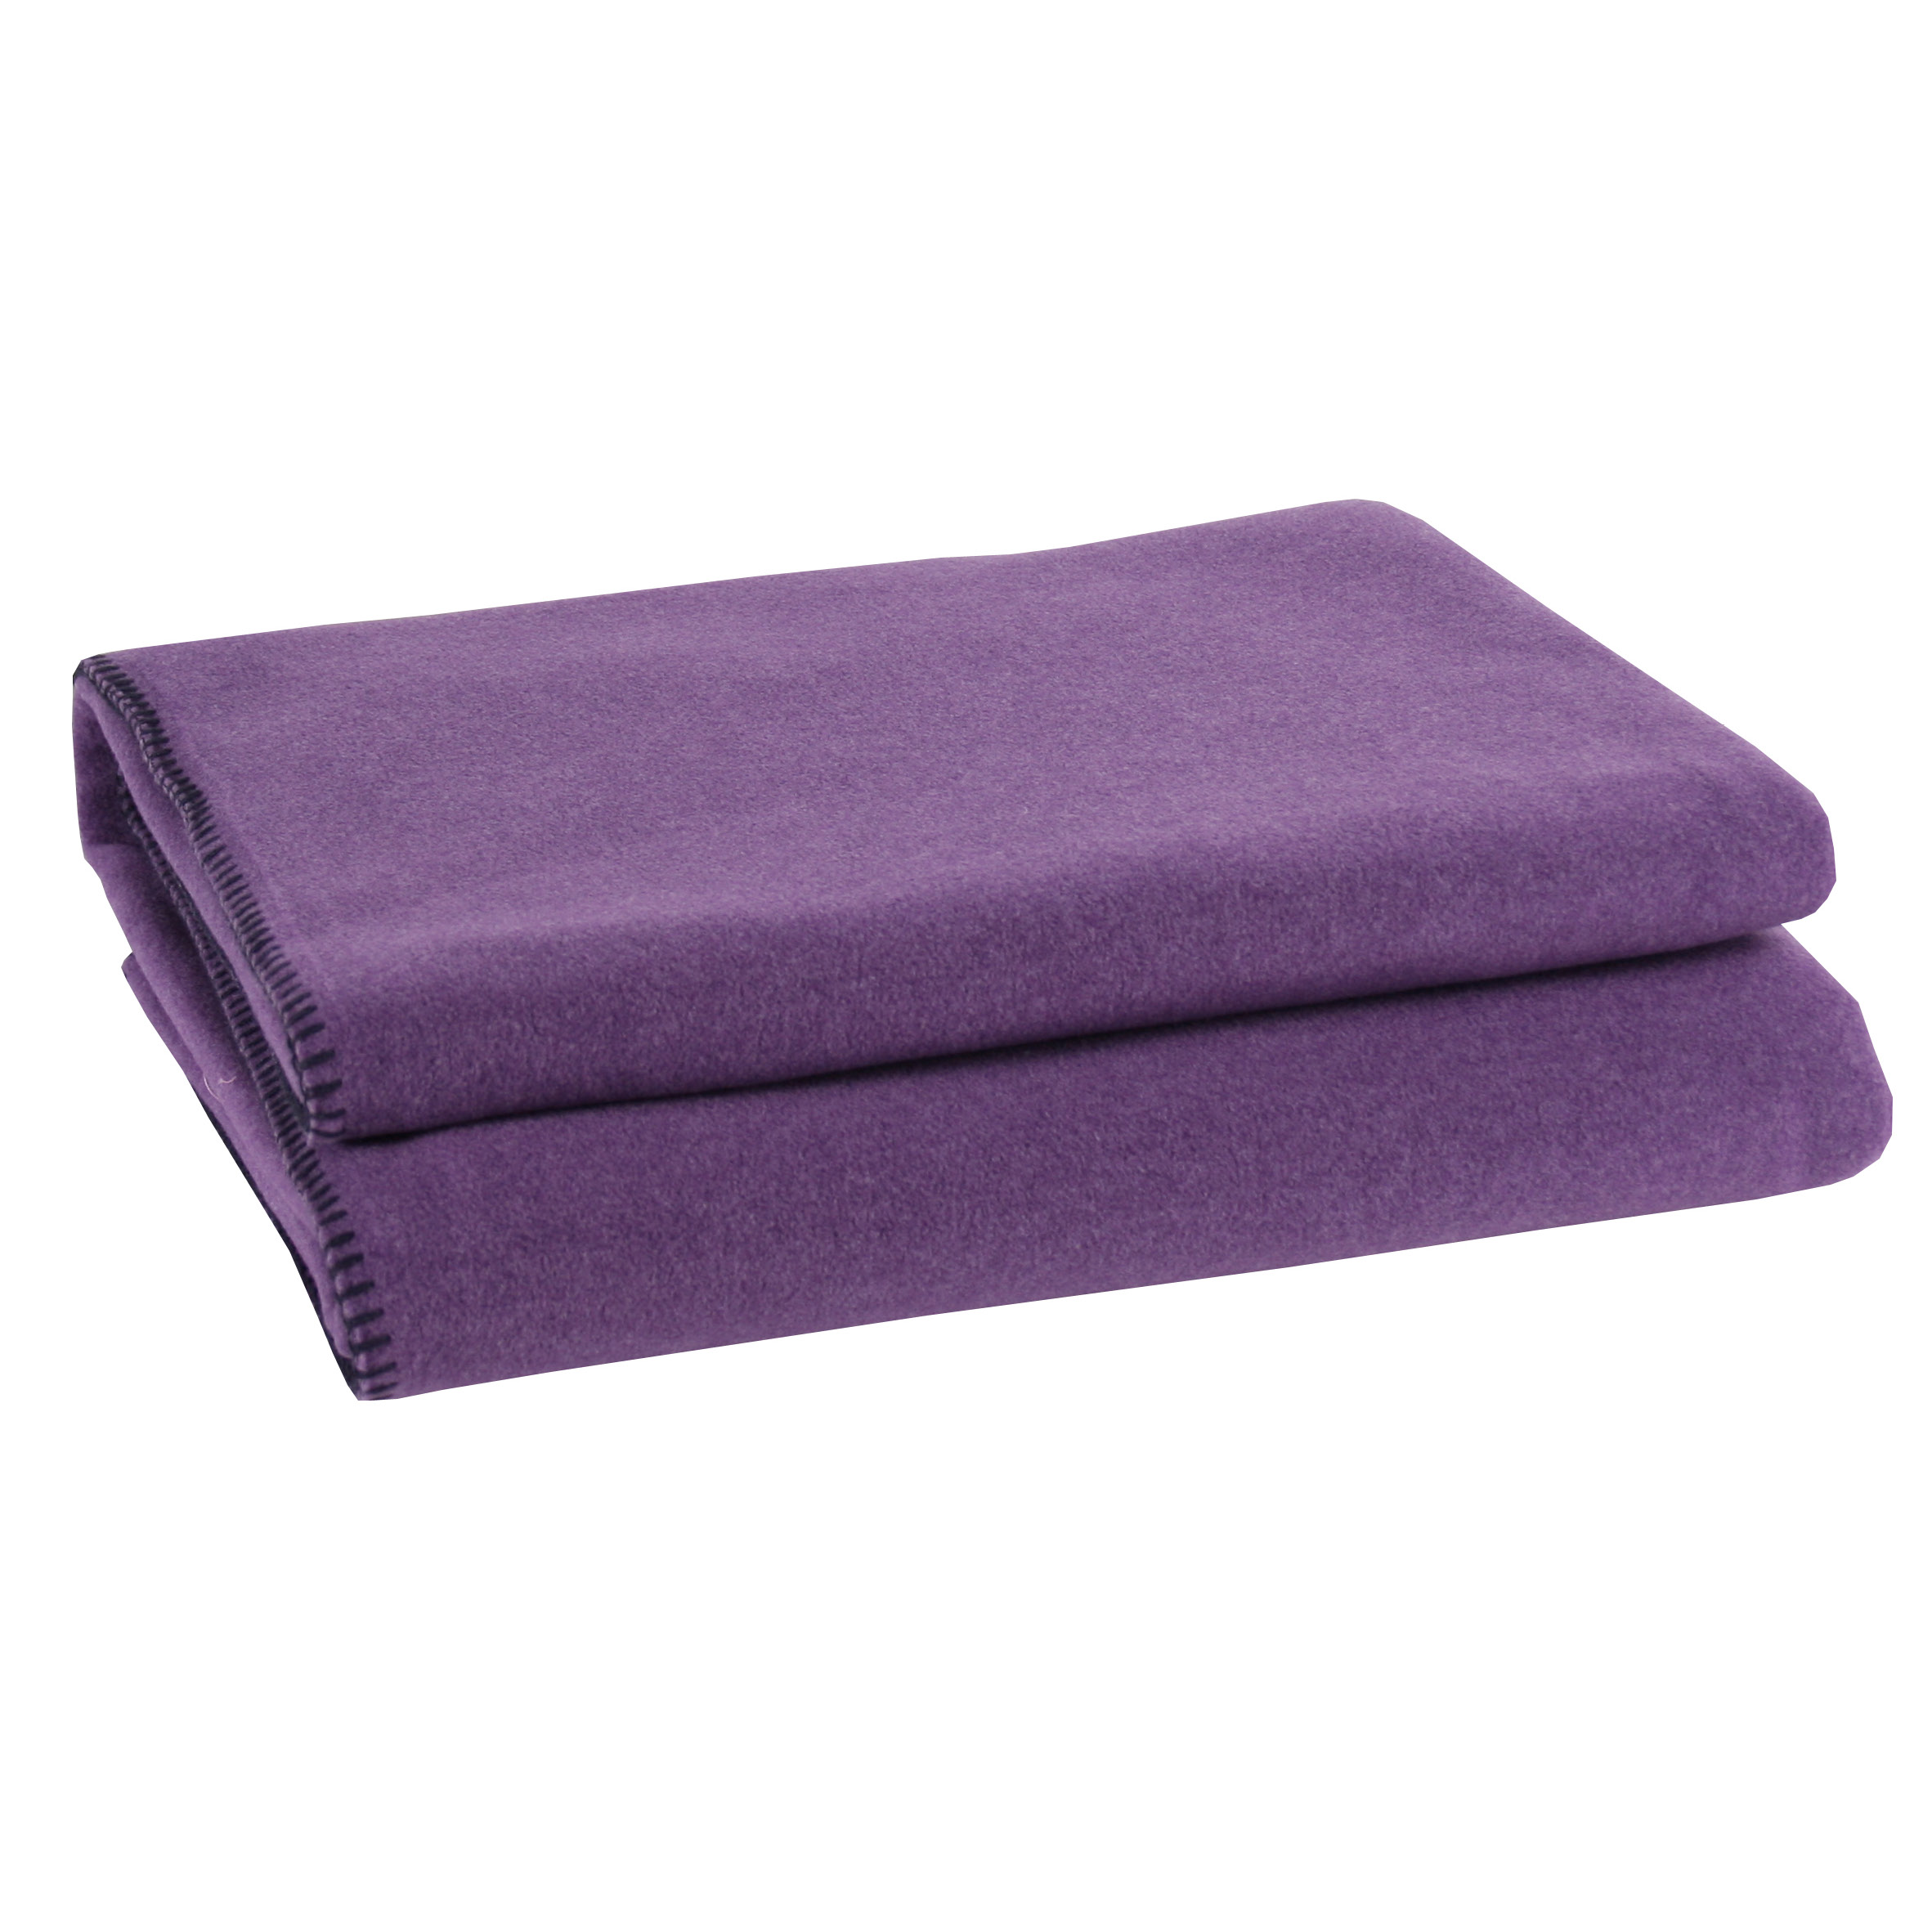 zoeppritz soft fleece decke lila zoeppritz querpass shop